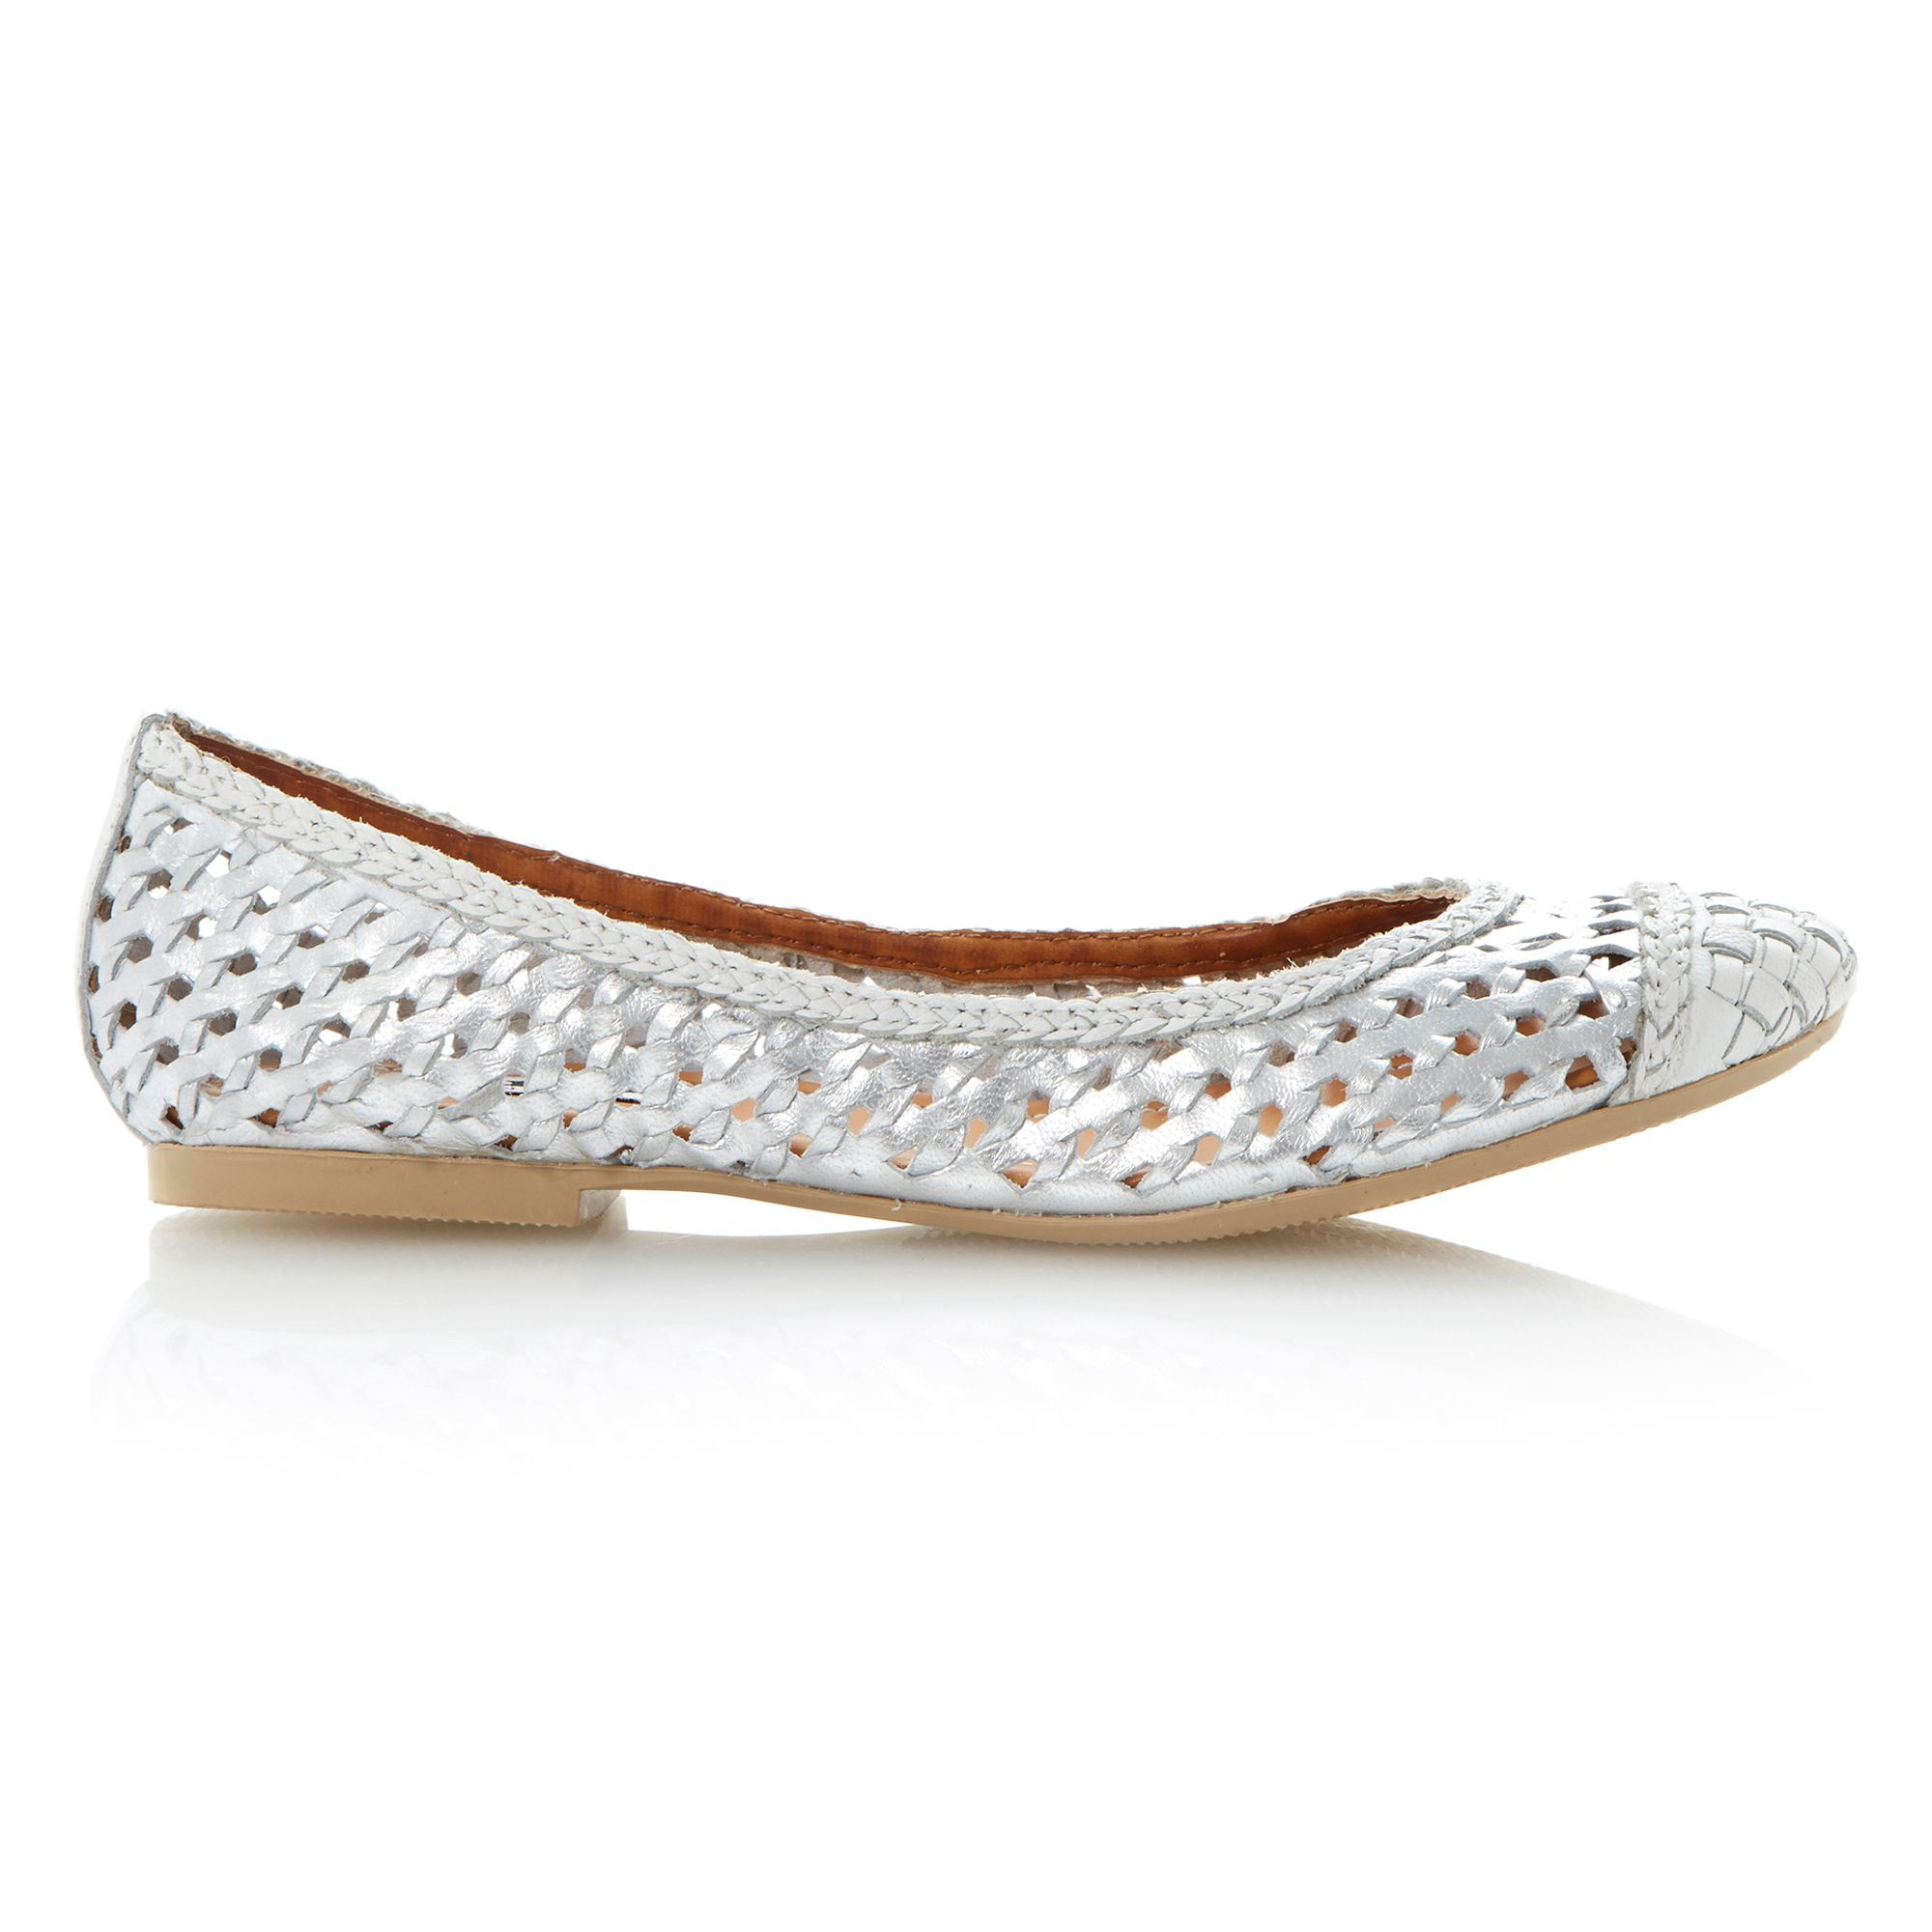 Dune Madalyn Leather Round Toe Flat Ballerina Shoes In Silver   Lyst